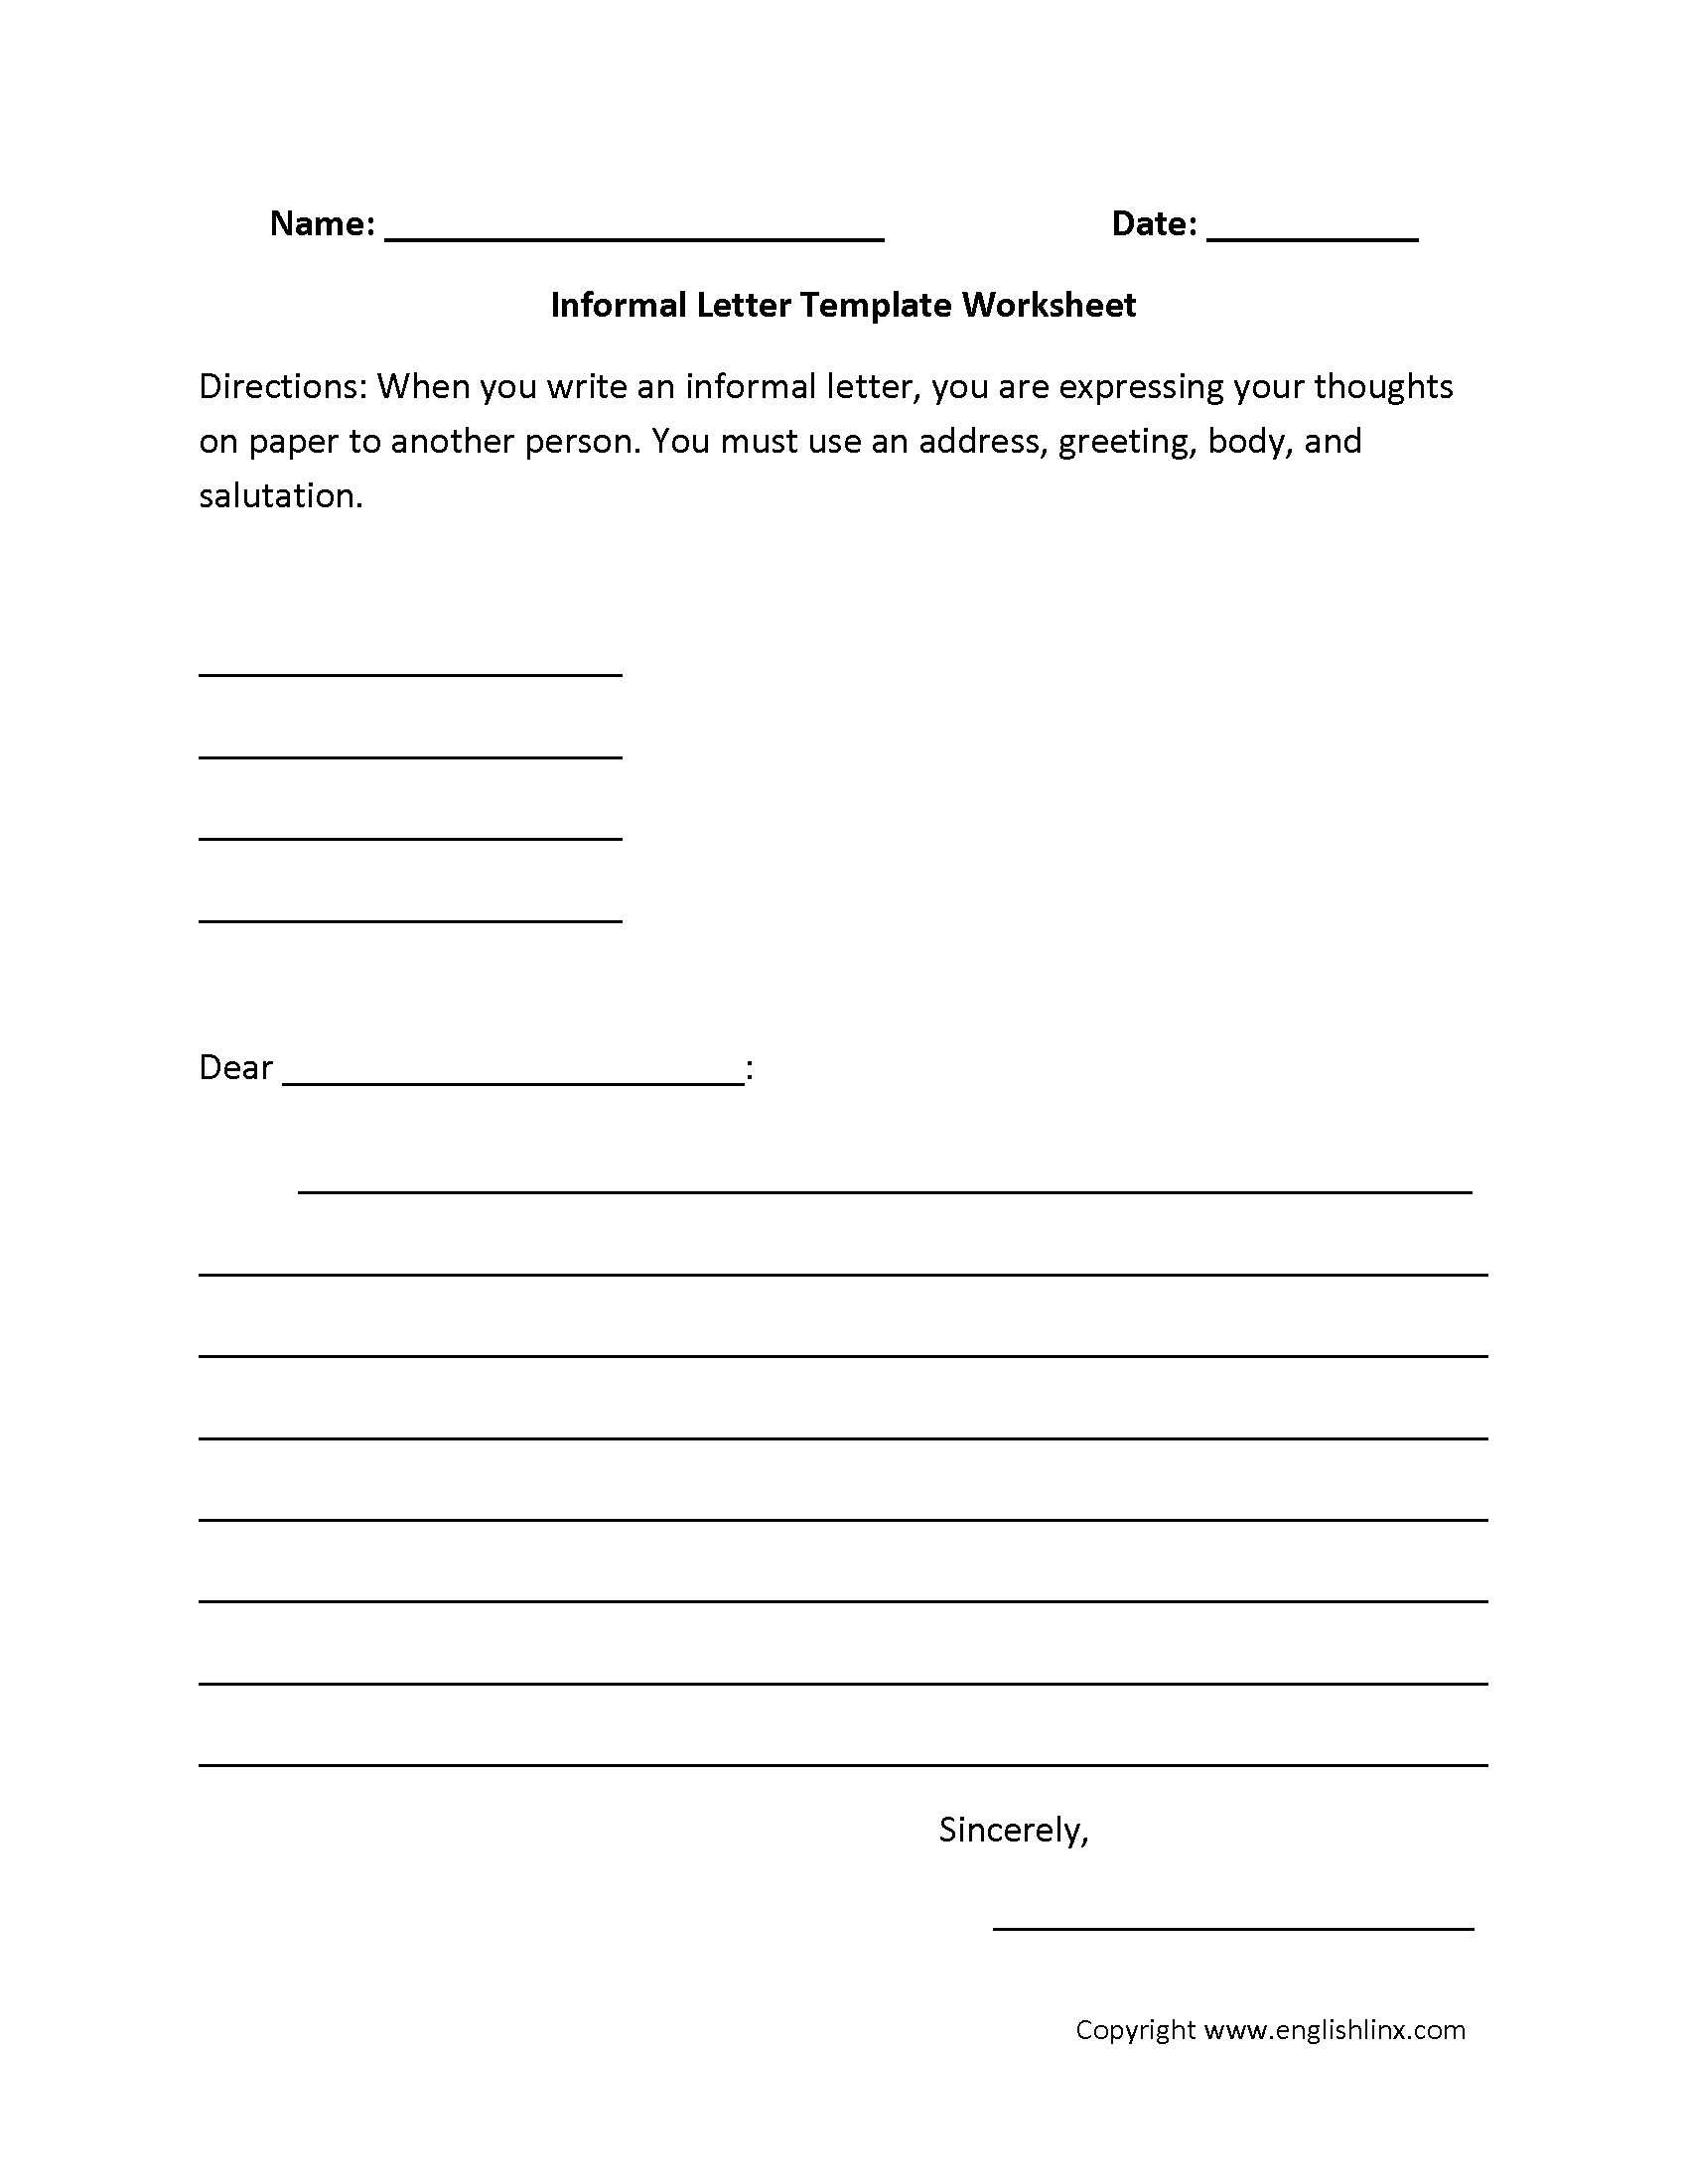 Spanish Alphabet Worksheets Also foreign Policy Worksheet New Spanish Color Worksheets for Beginners